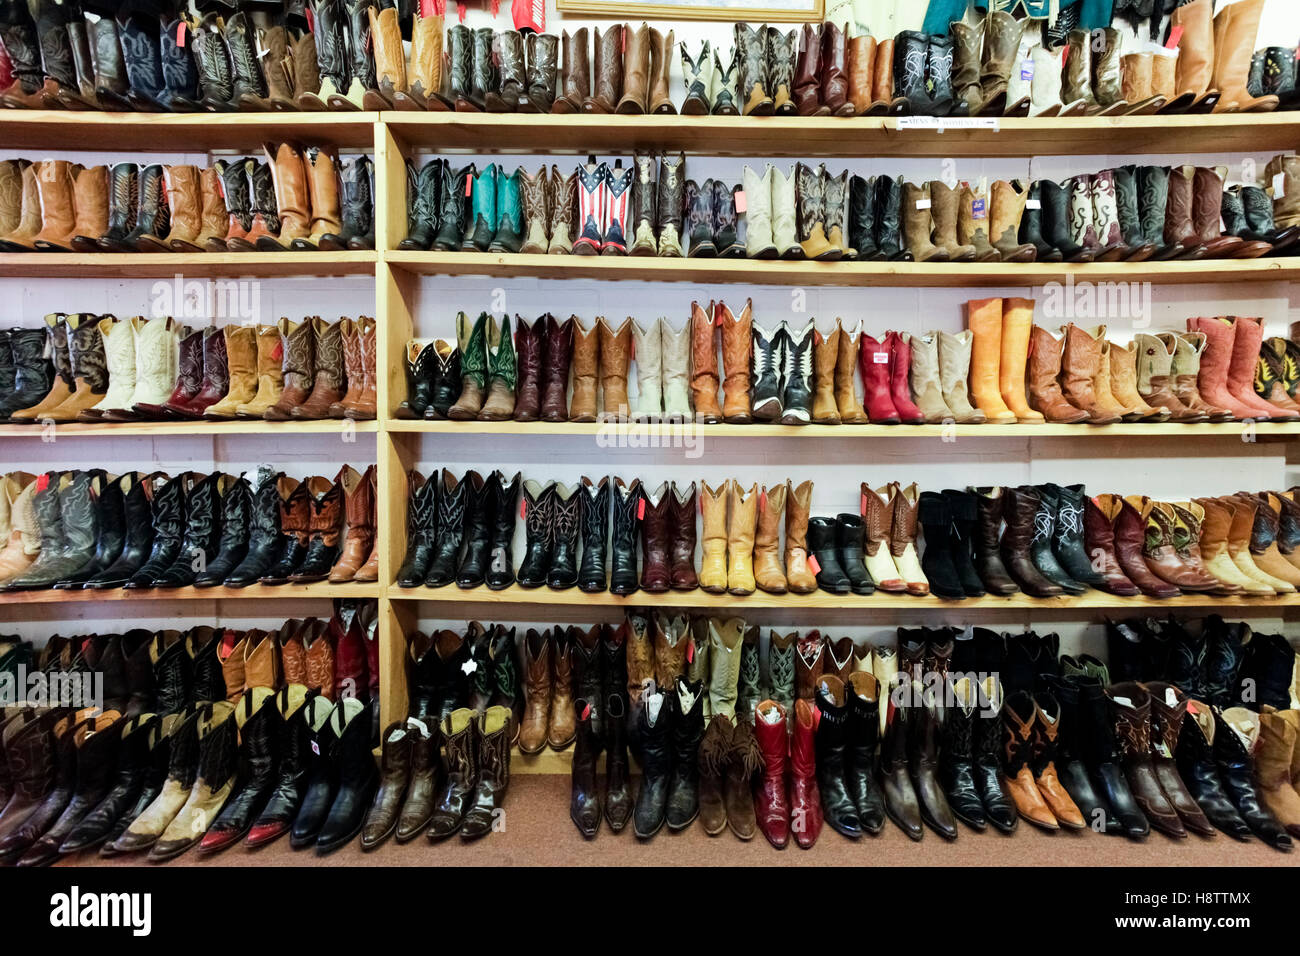 Furniture consignment stores in santa fe nm - Santa Fe New Mexico United States Vintage Cowboy Boots